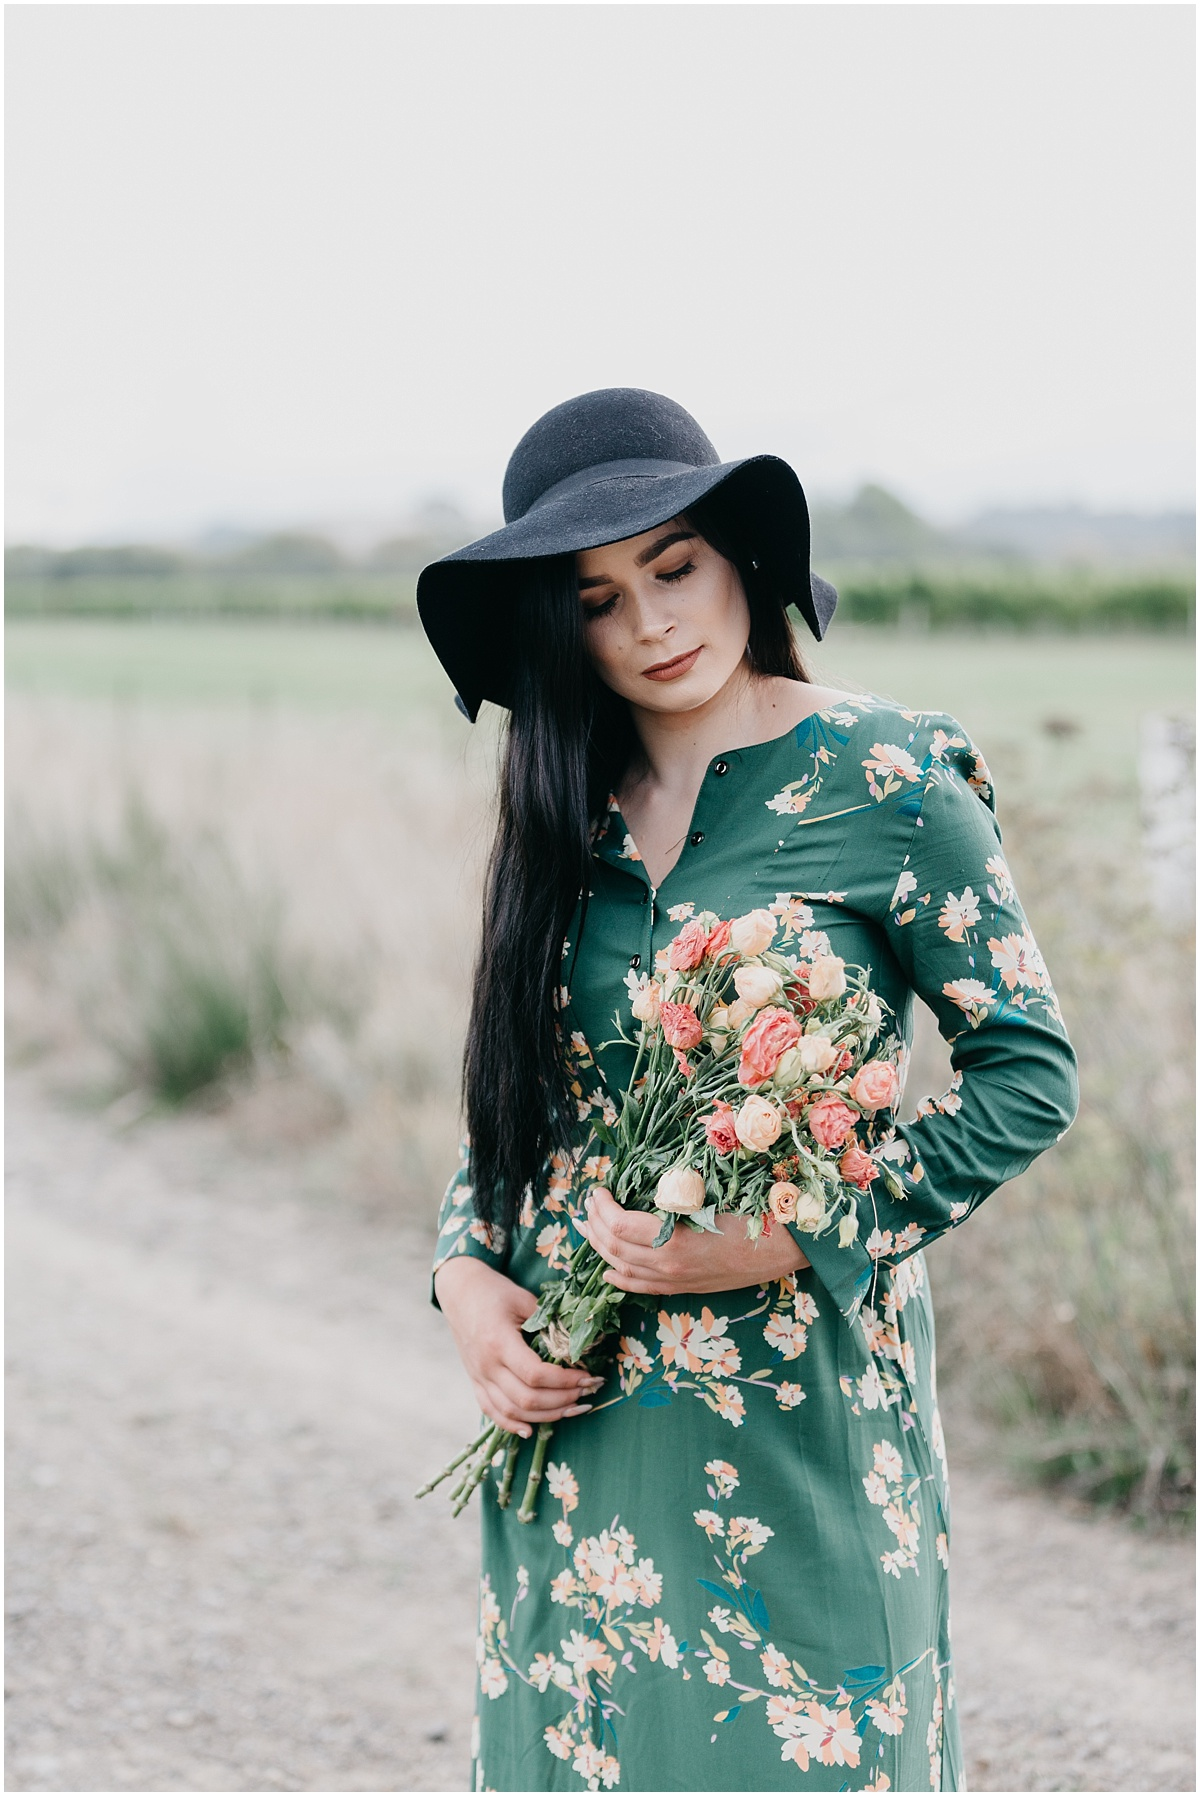 Woman long black hair in green dress looking at bouquet of wild flowers